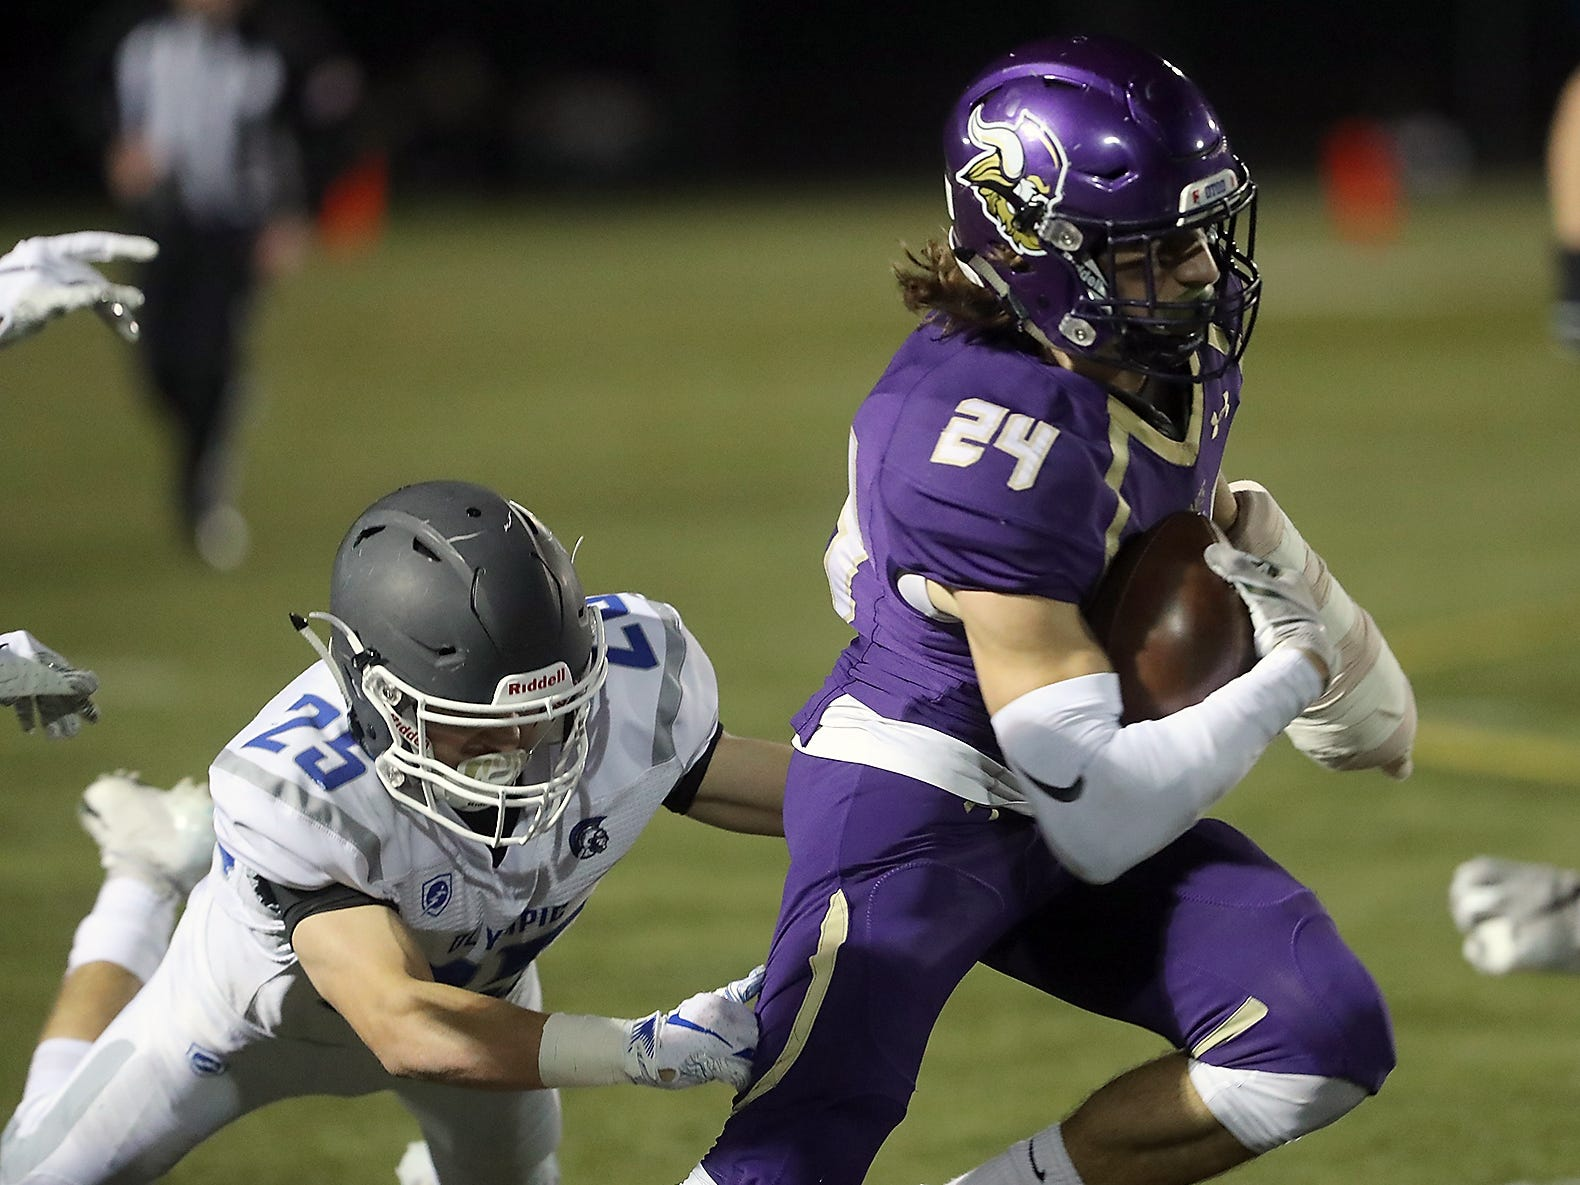 Olympic's Taylor Andrews (25) makes a grab for North Kitsap's Riley Solis (24) as he carries the ball down the field during the first half of their game in Poulsbo on Friday, October 26, 2018.